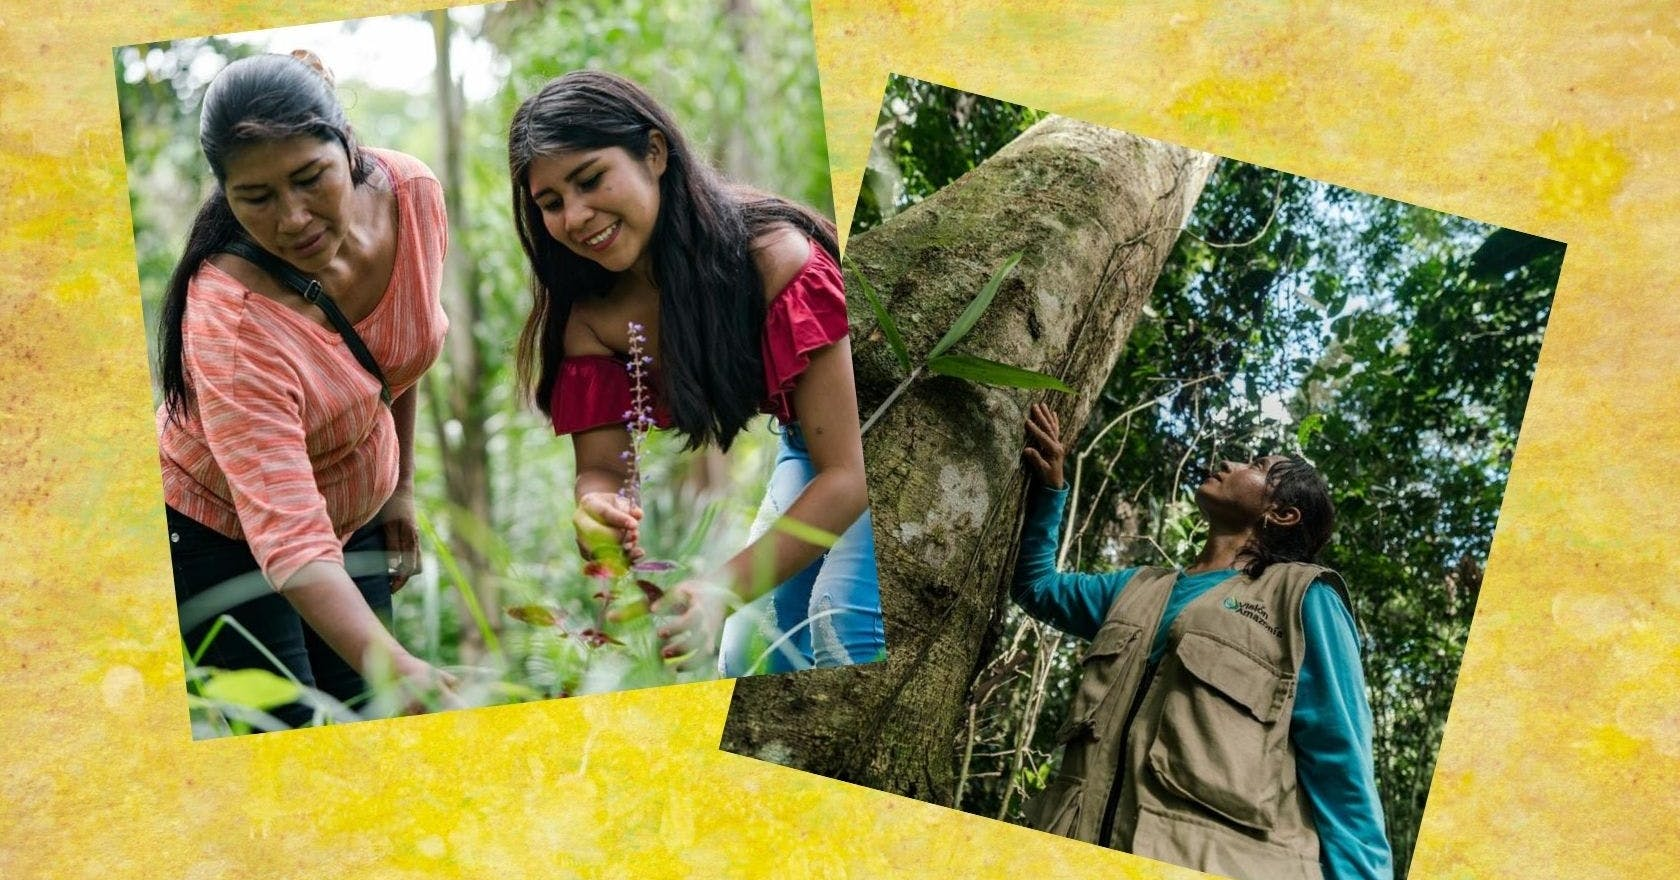 Meet the women fighting to save the Amazon rainforest